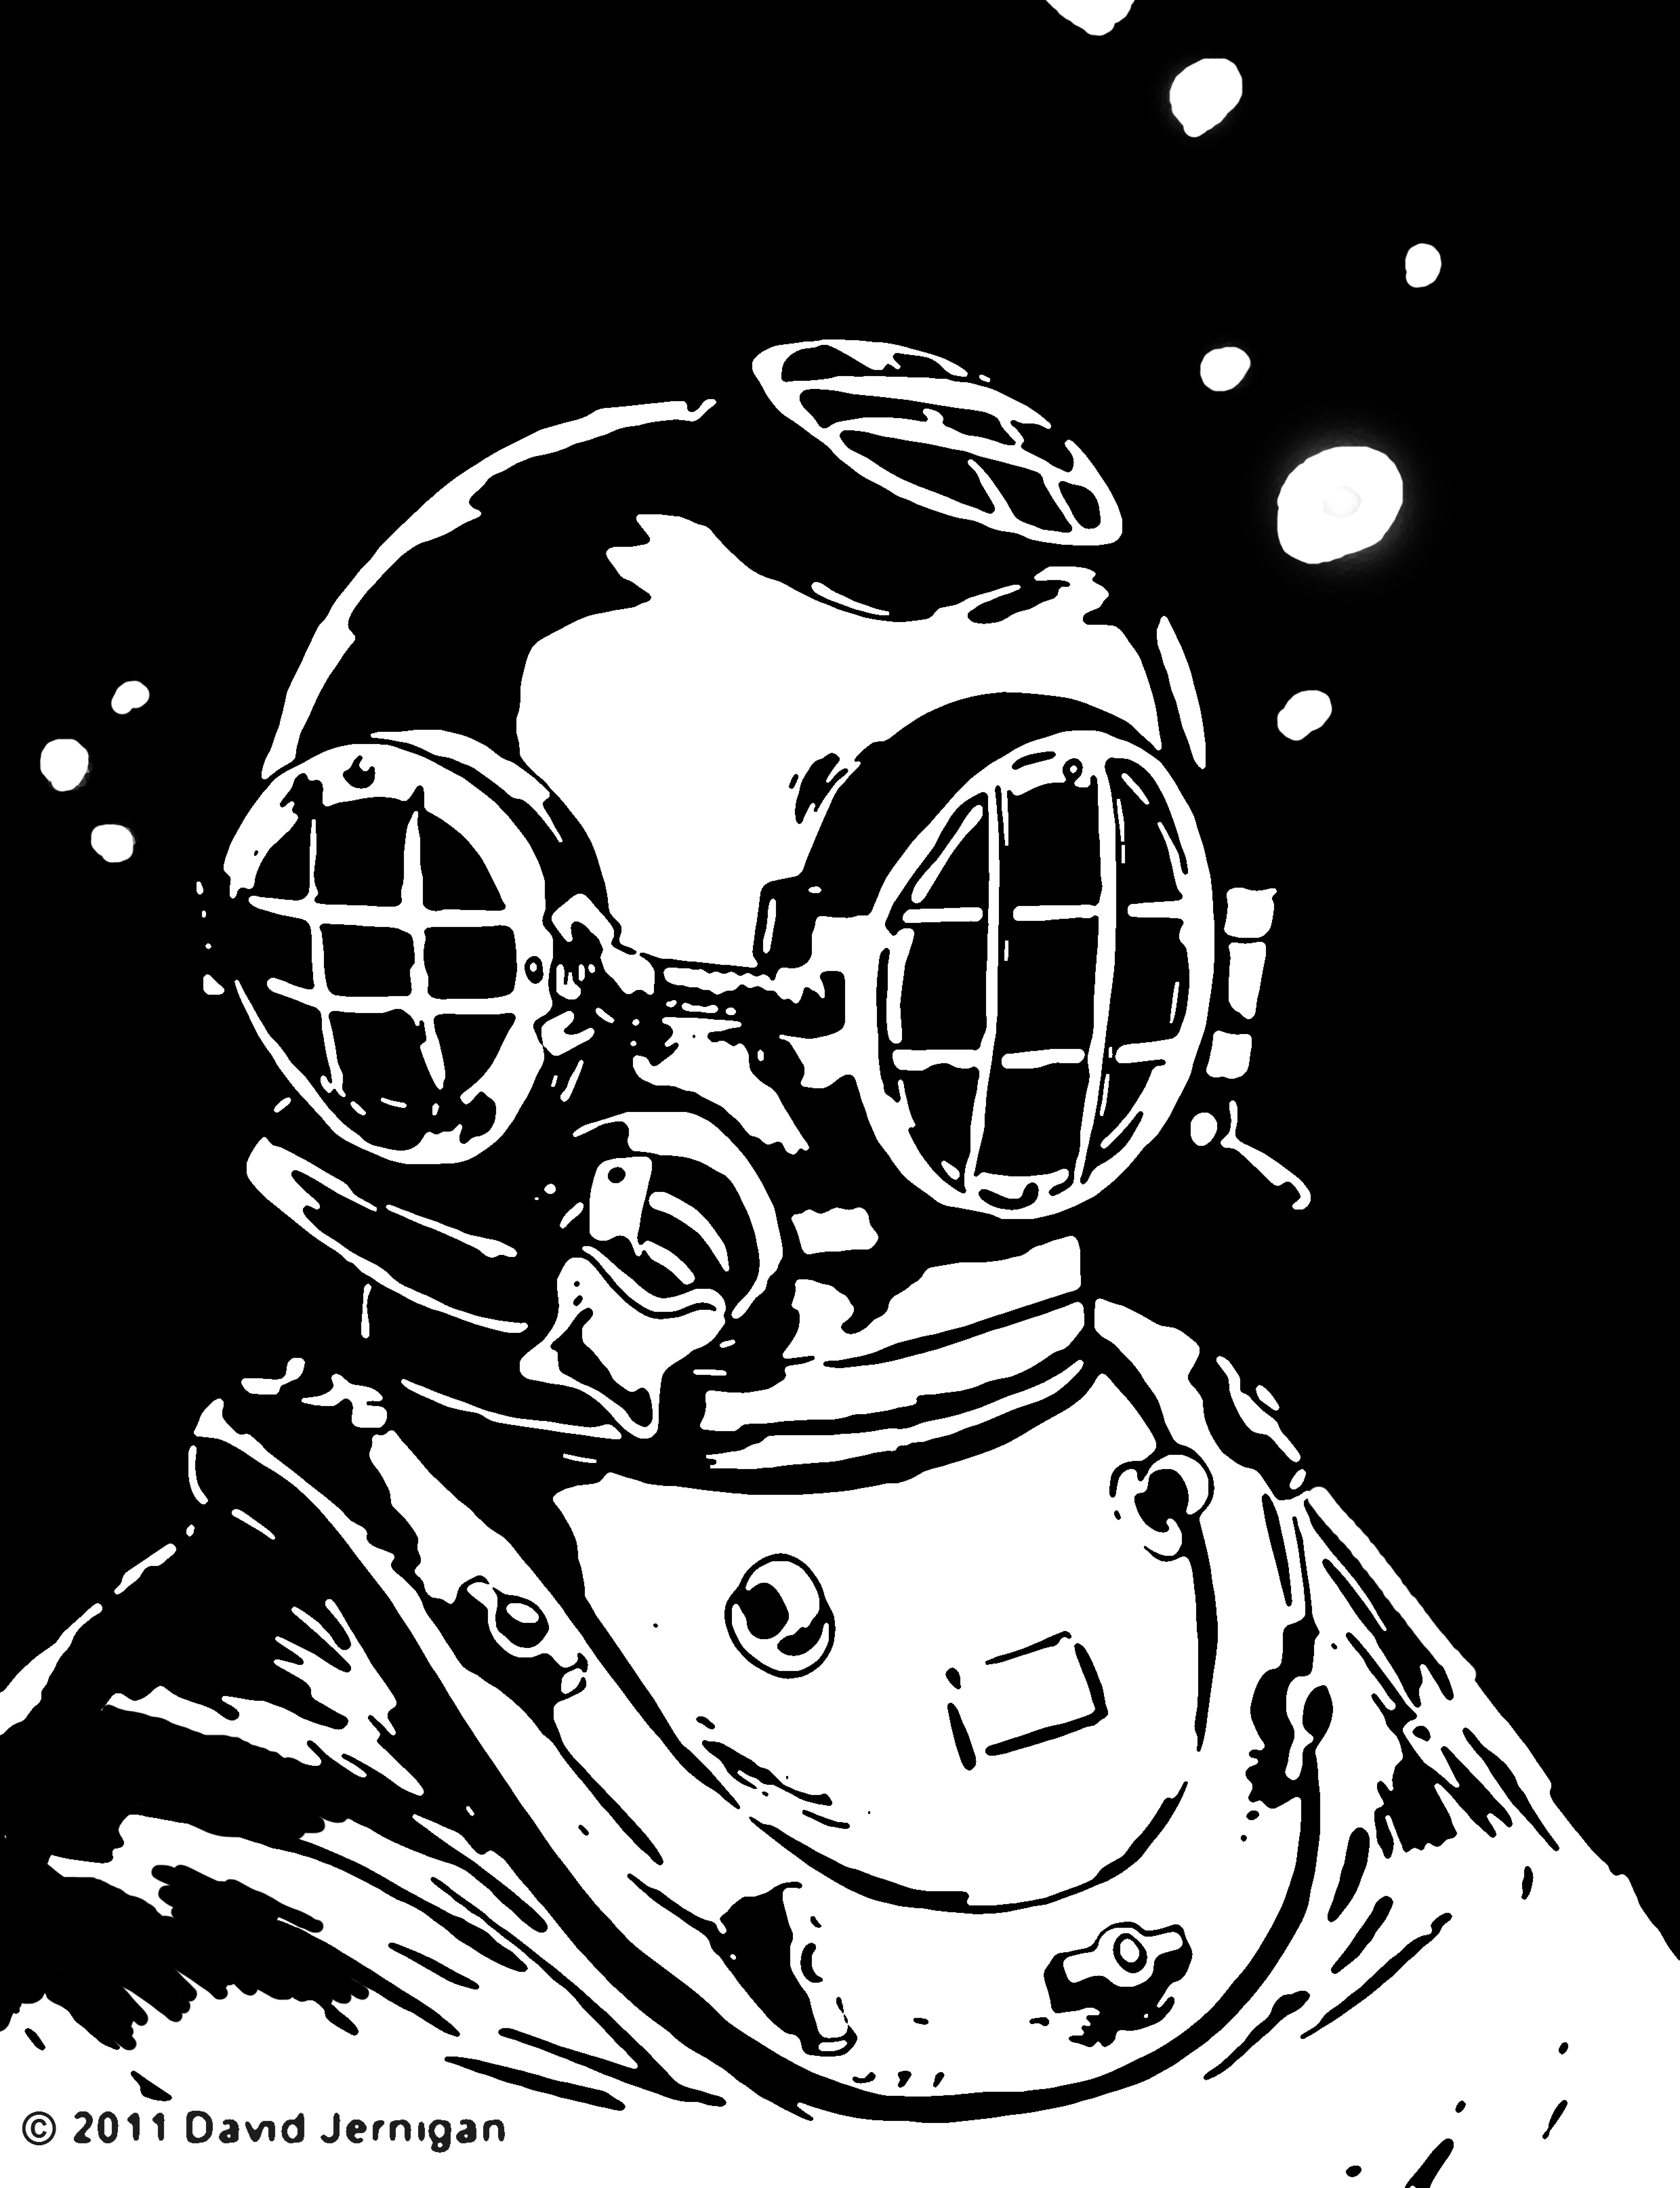 sketch of an old diving suit helmet illustrations by david